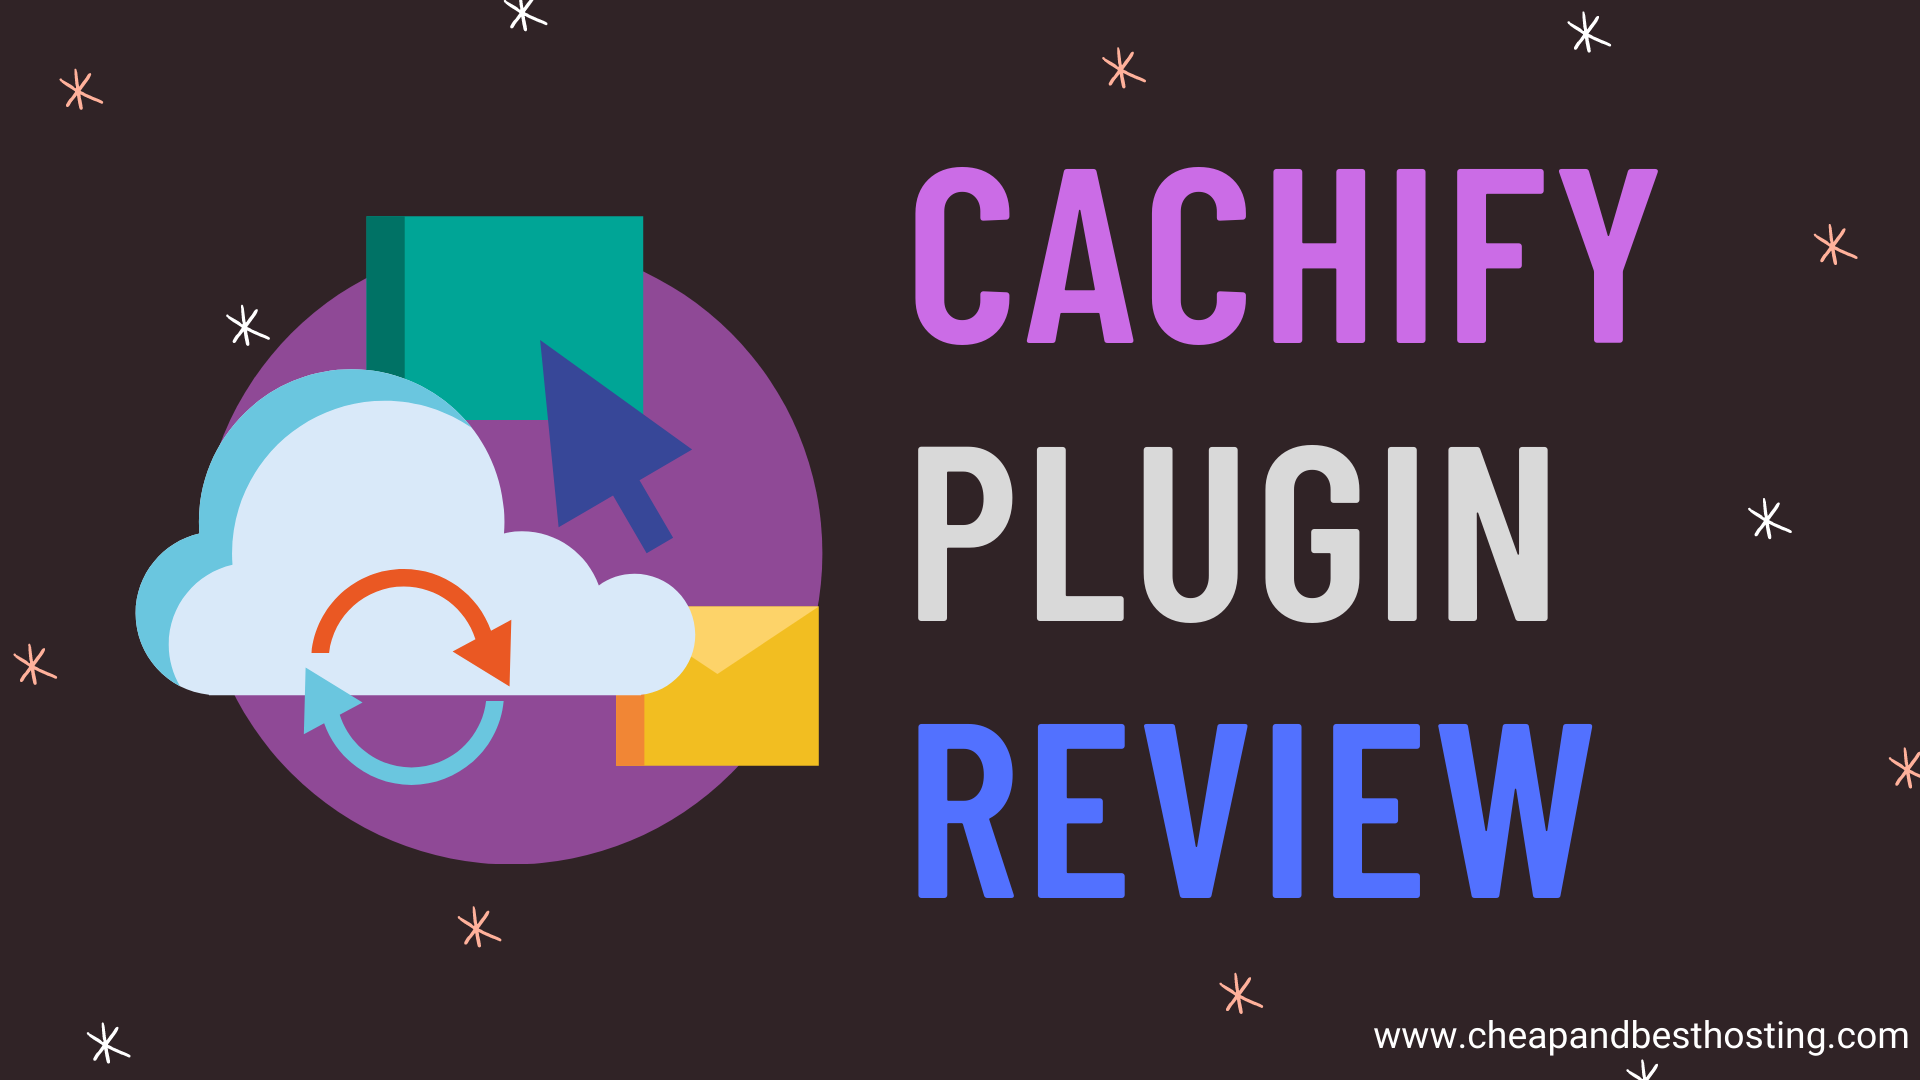 Cachify Plugin review